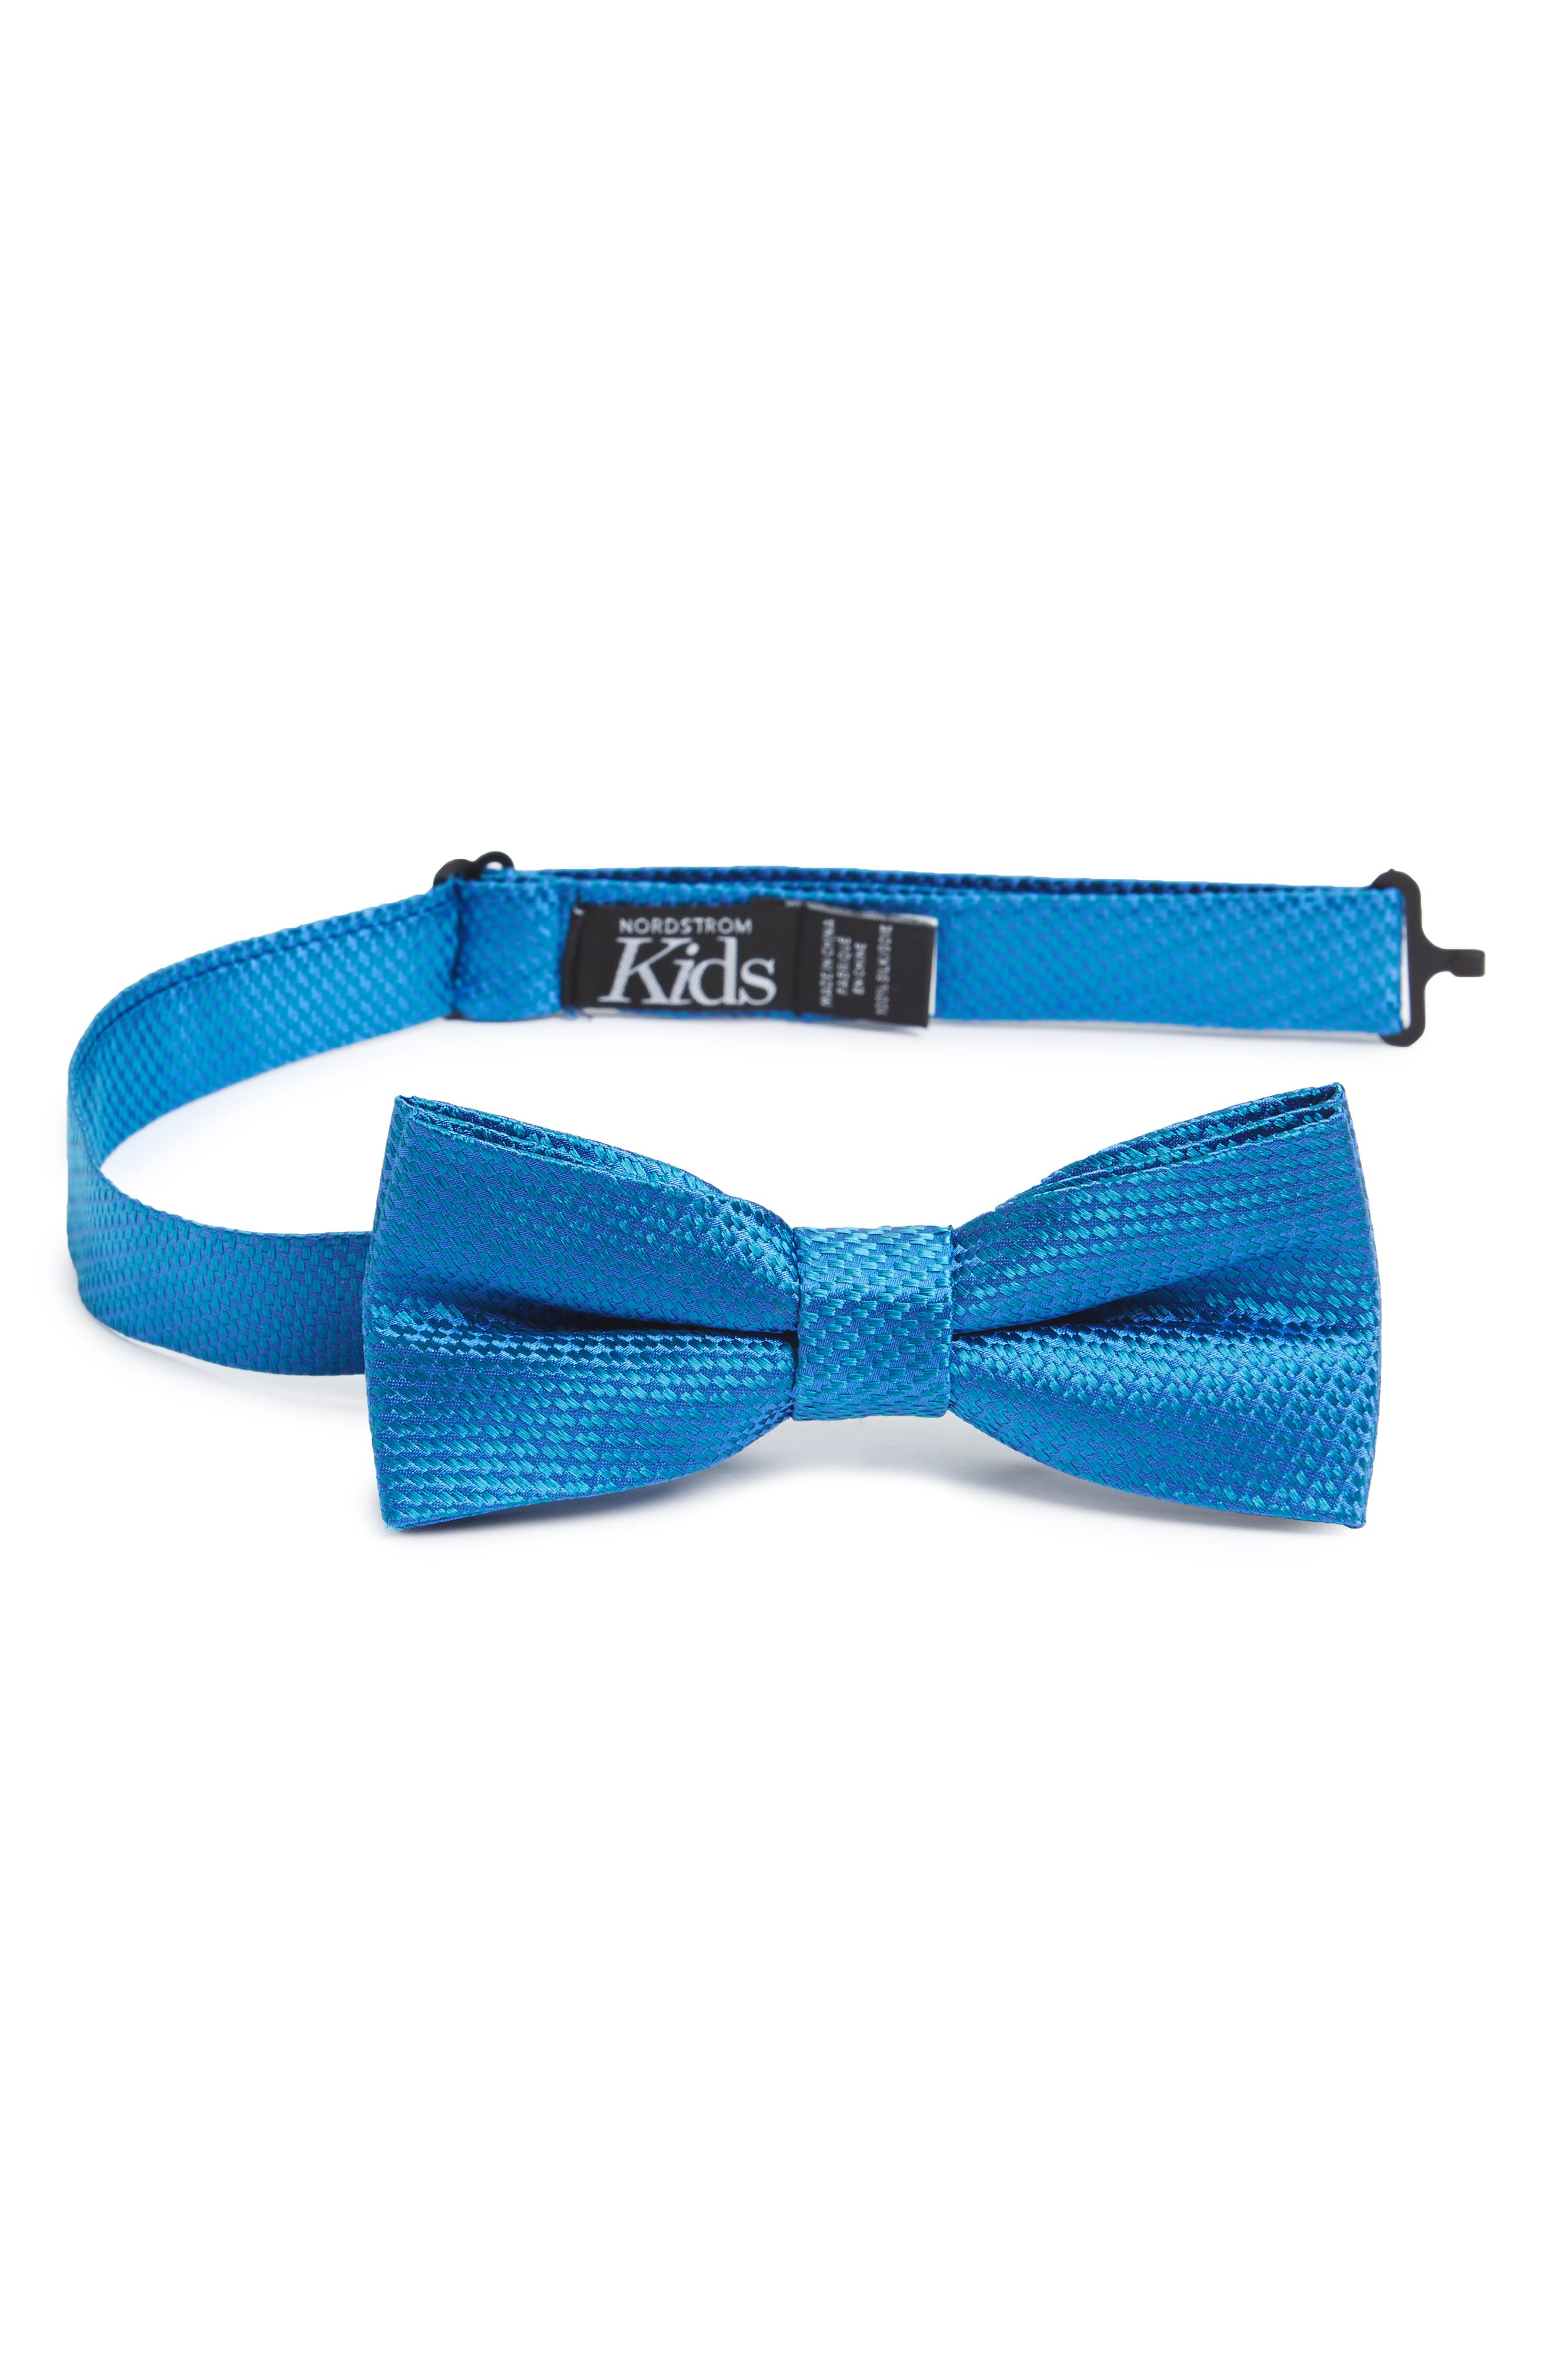 Alternate Image 1 Selected - Nordstrom Solid Silk Bow Tie (Big Boys)